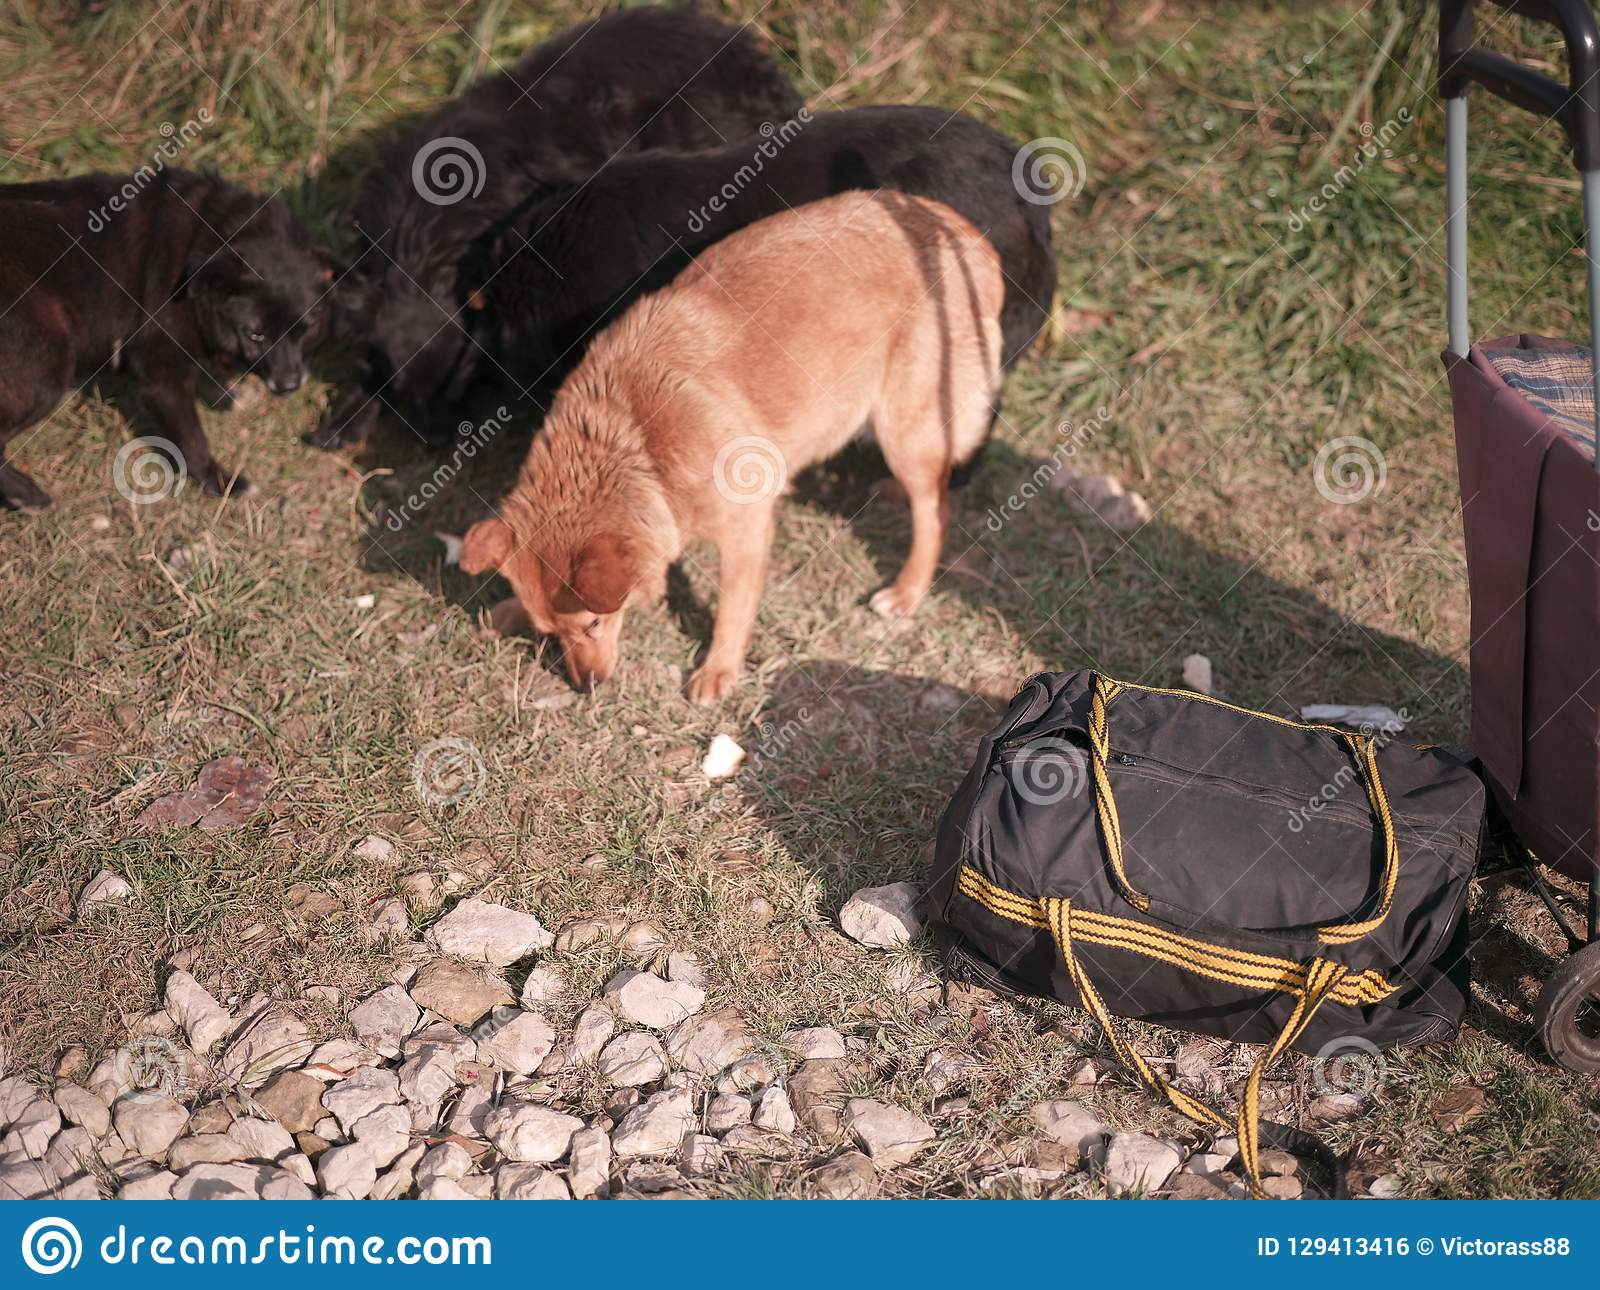 Lugagge and stray dogs stock photo  Image of trolley - 129413416